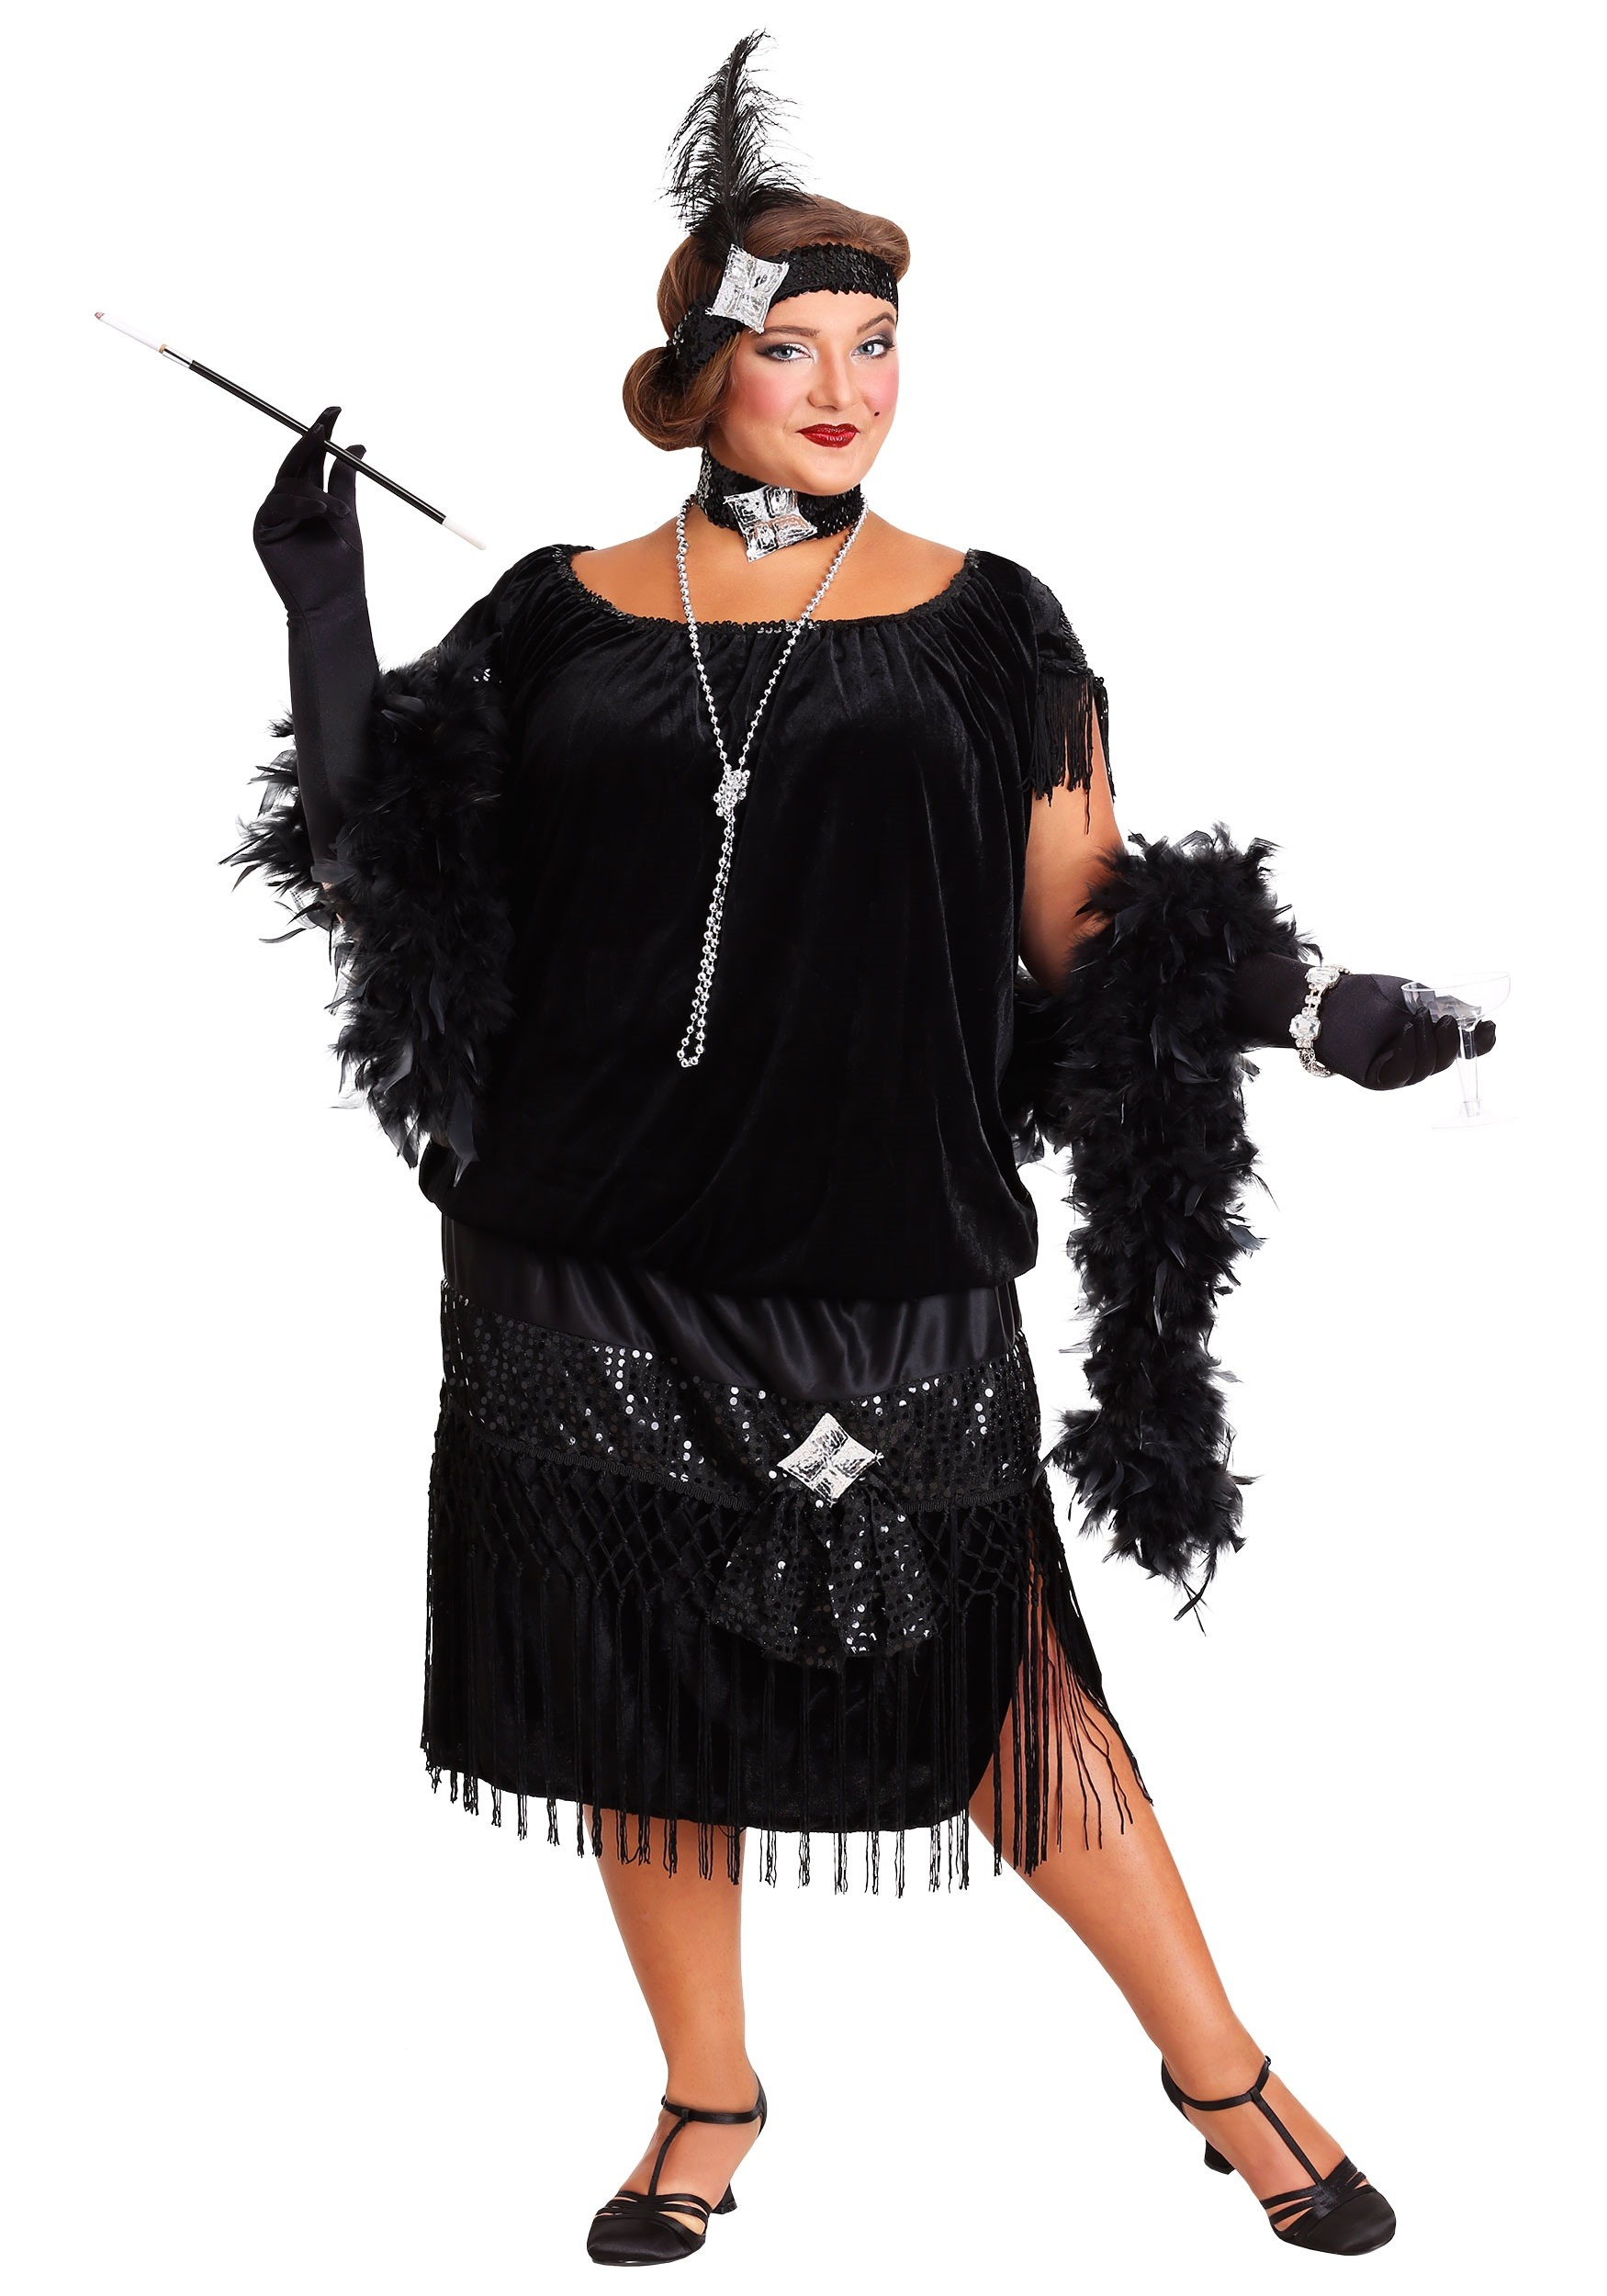 Plus Size Women\'s Costumes - Plus Size Halloween Costumes for Women